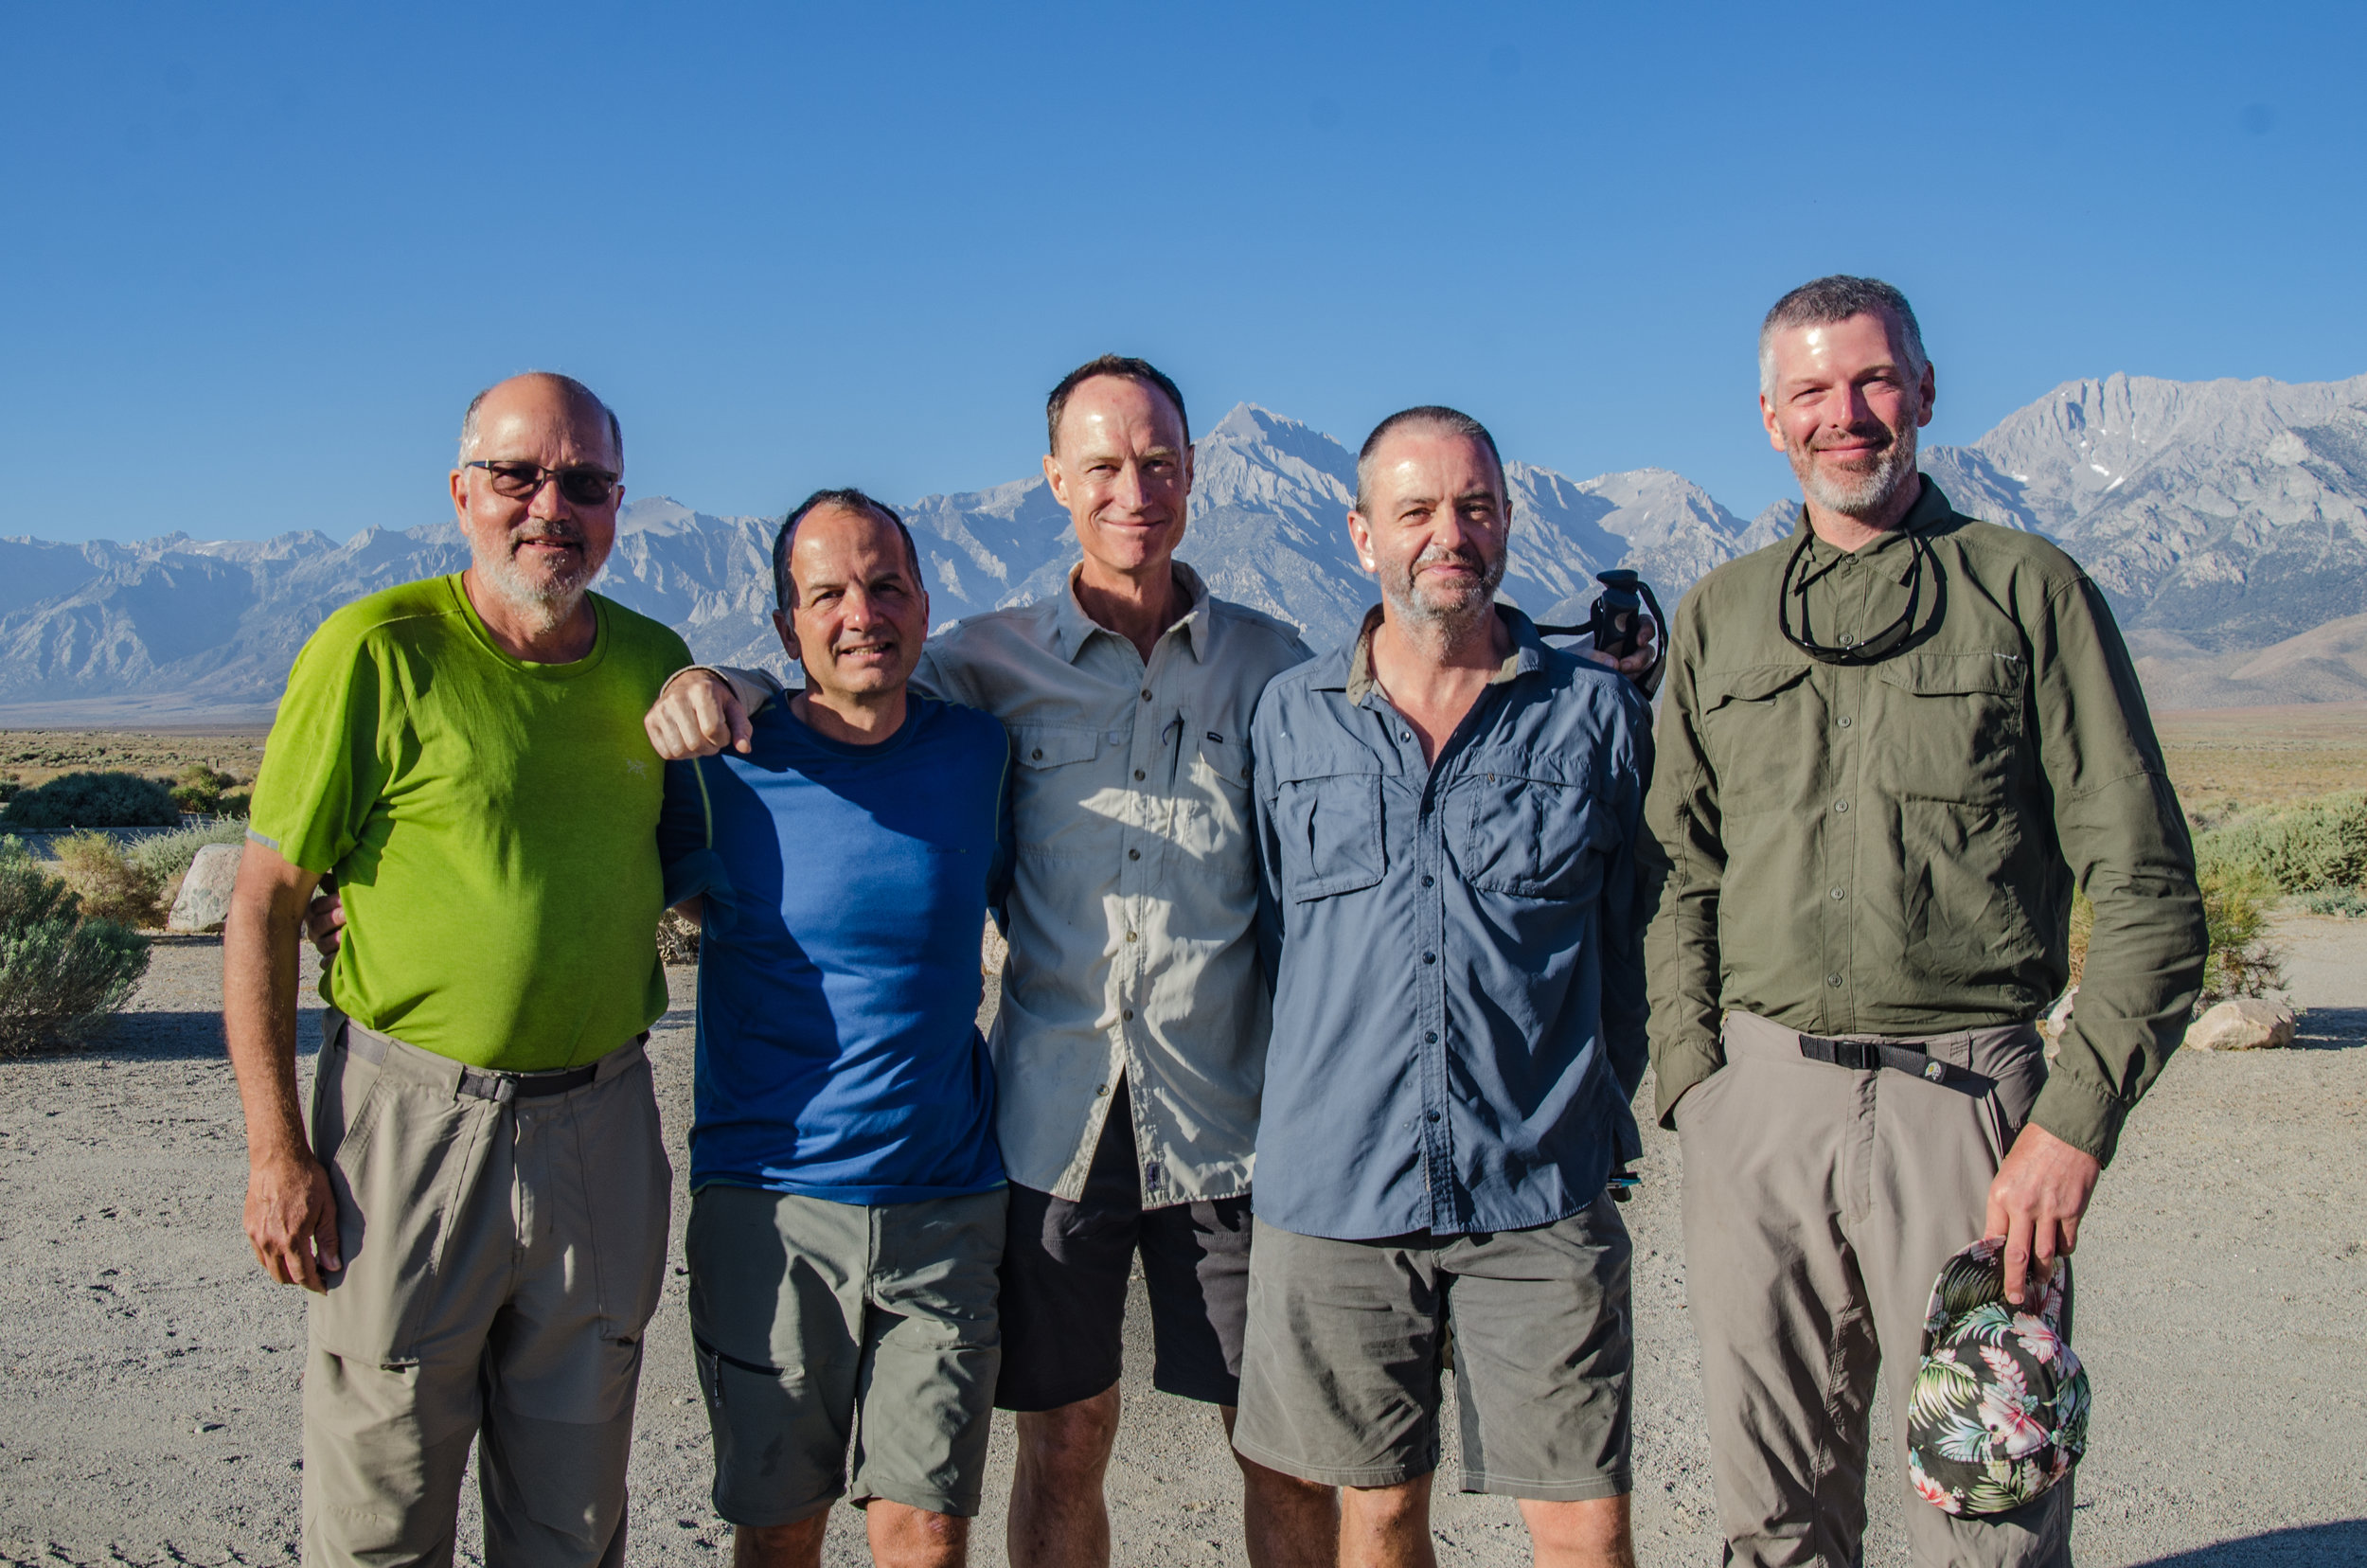 aug29and30hikers-1.jpg